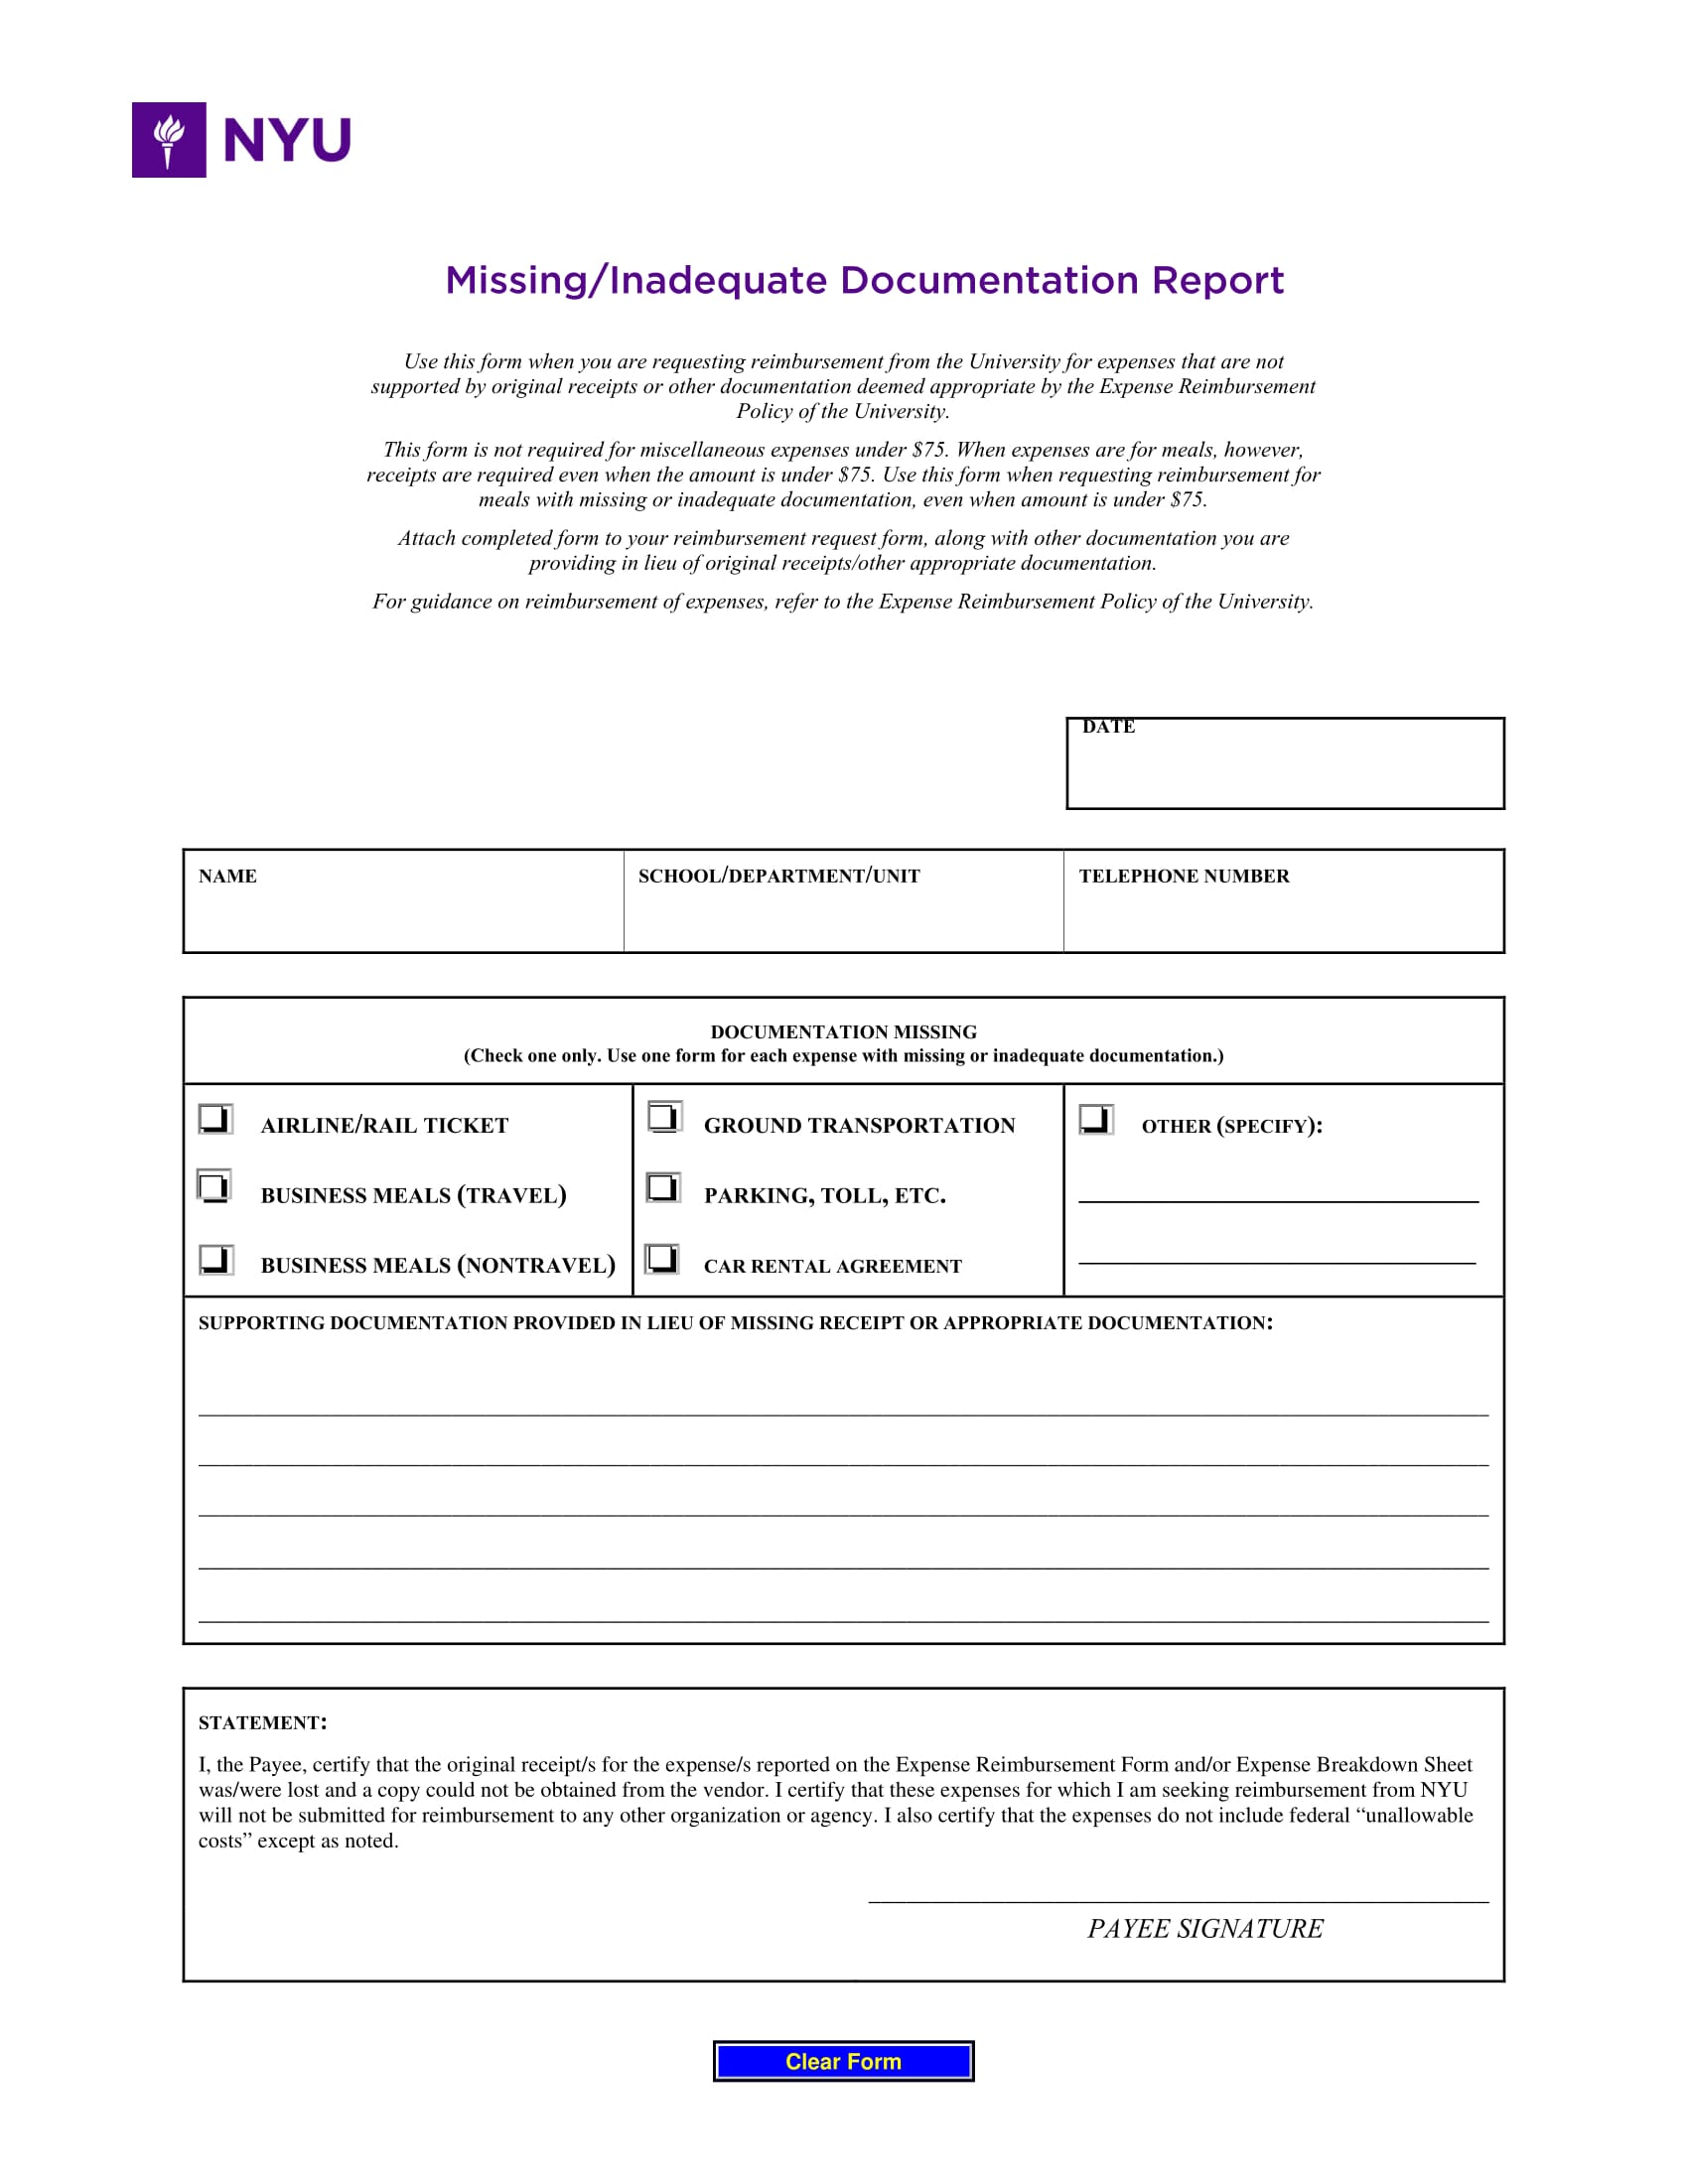 missing documentation report form 1